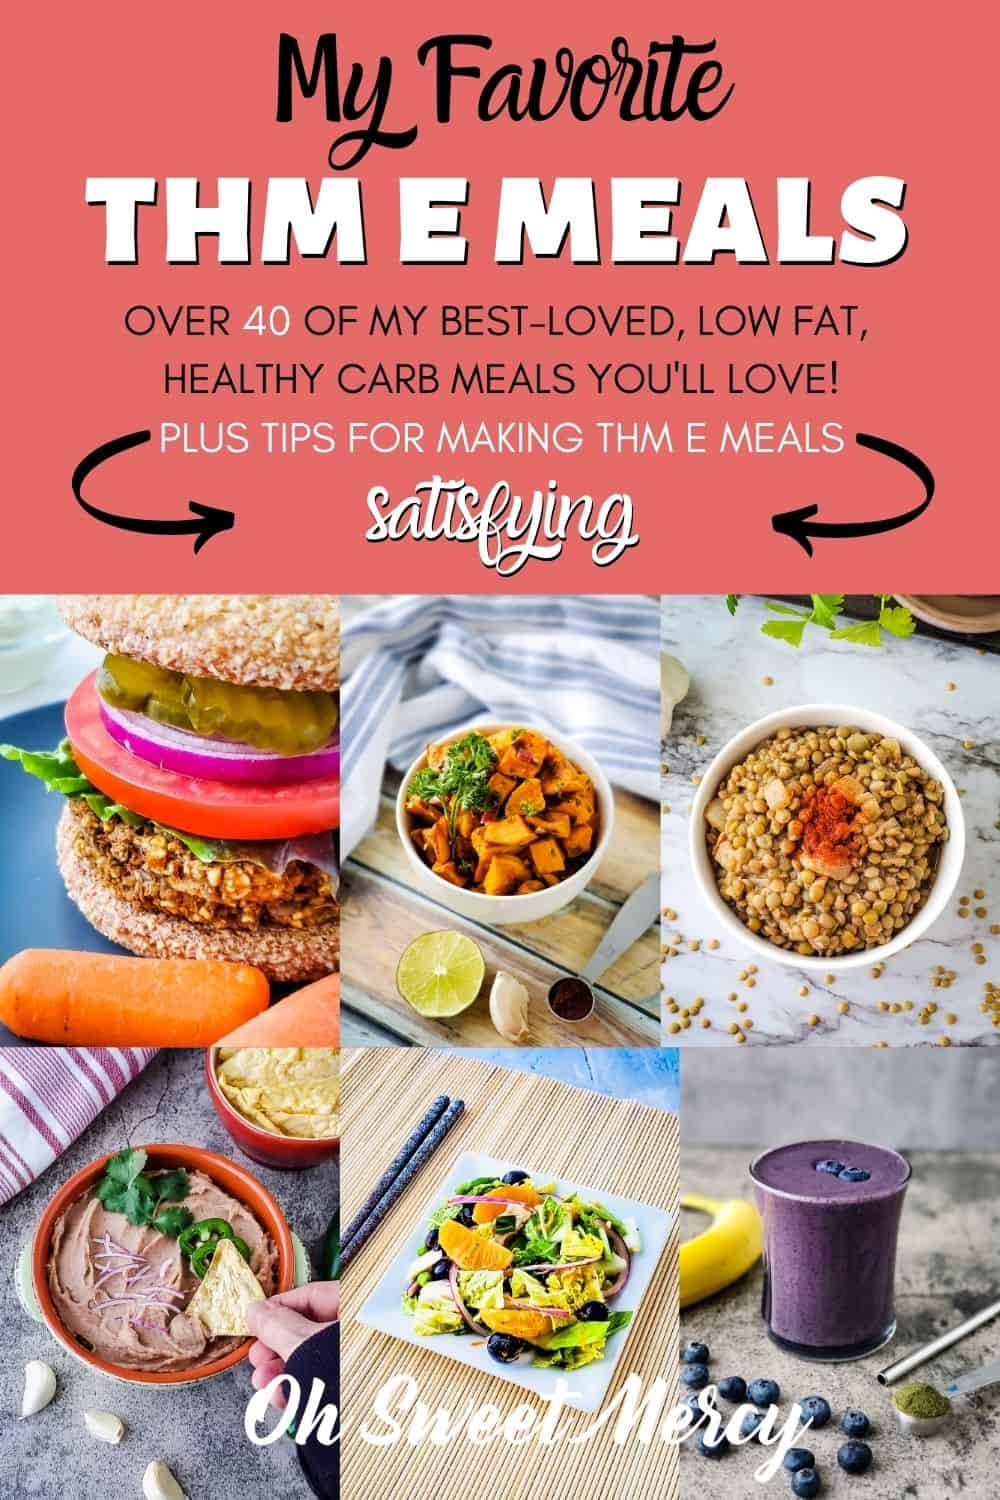 Struggling with THM E meals? I used to but now I love them! Check out my favorite THM E meals (over 40 recipes) plus get tips for making E meals more satisfying. #thm #thme #lowfat #healthycarbs #thmrecipes @ohsweetmercy